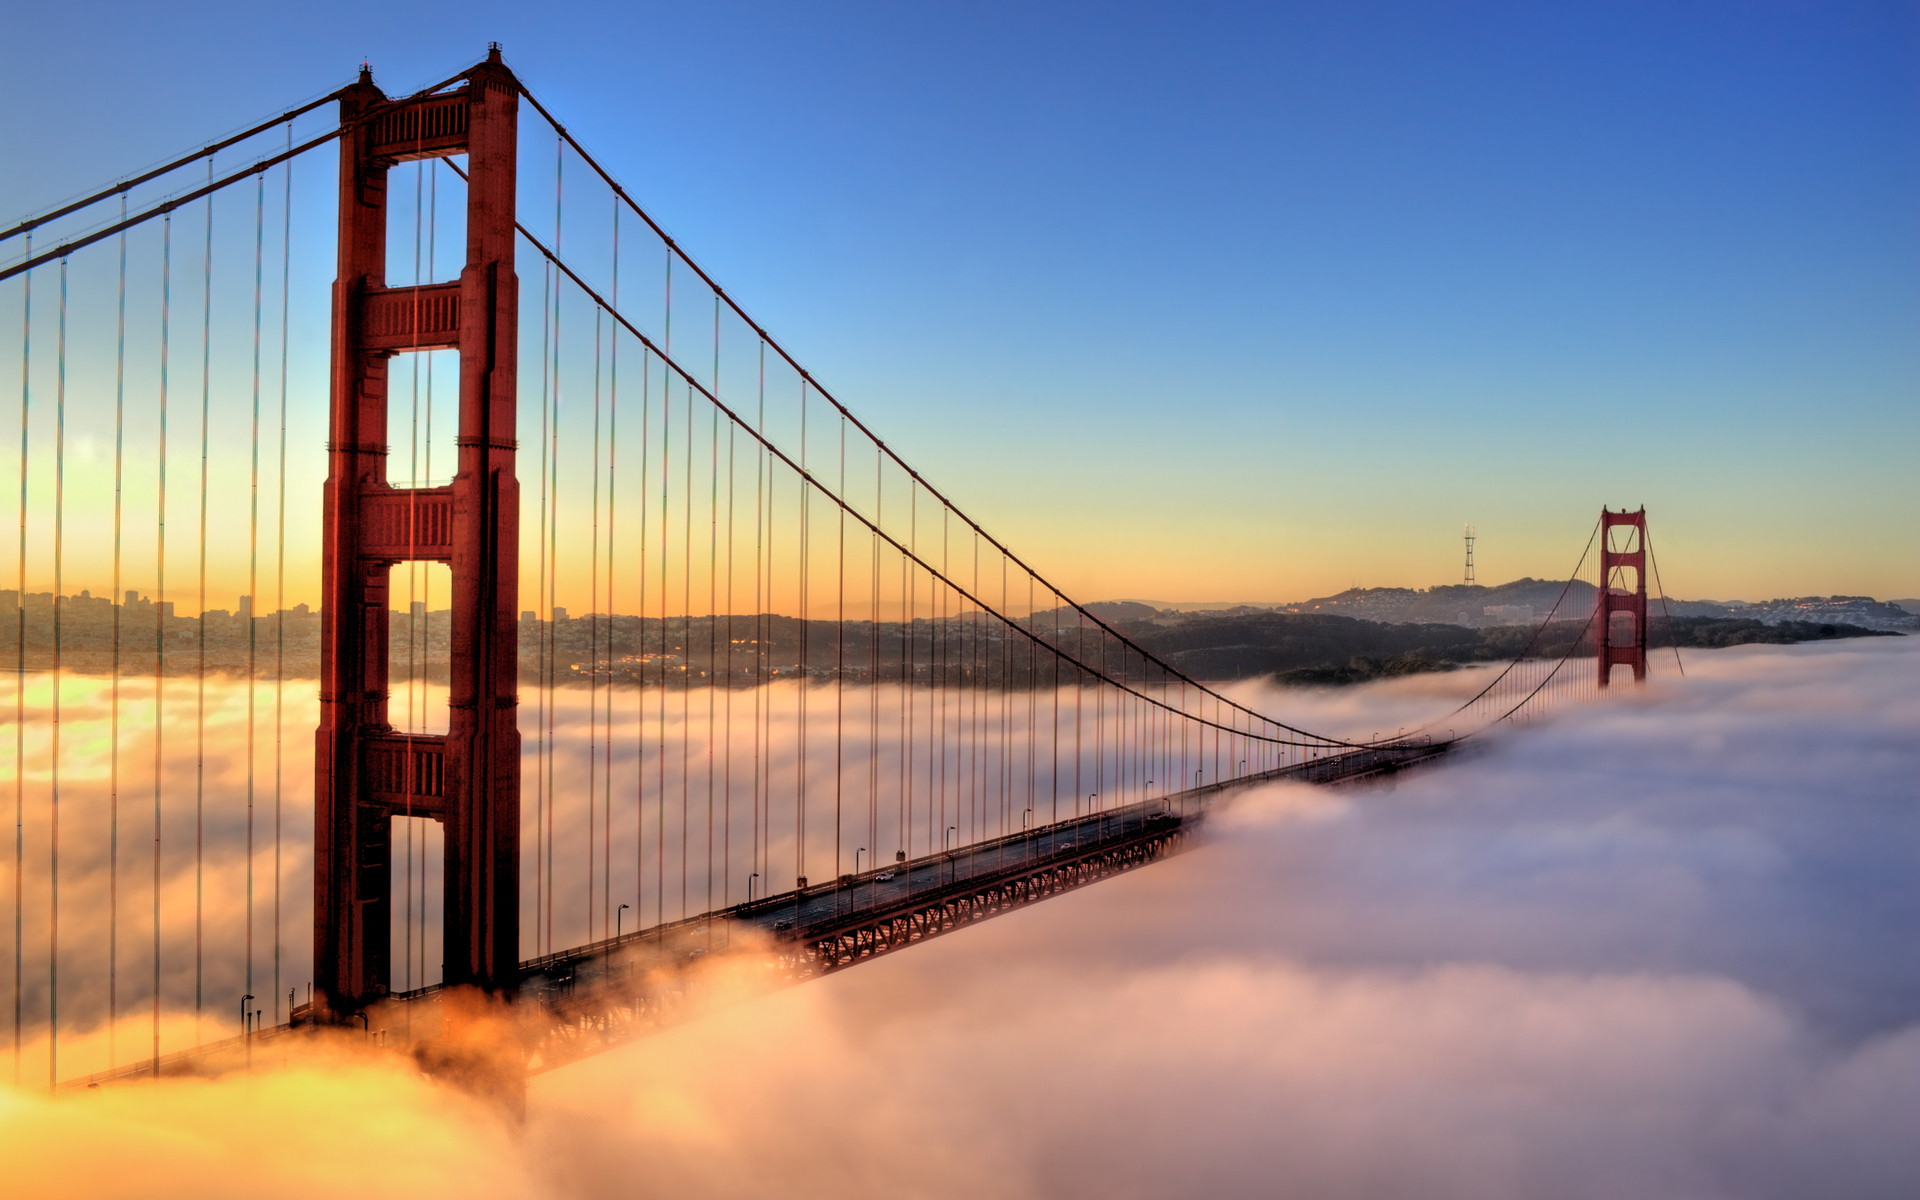 Res: 1920x1200, Golden Gate HD Wallpaper | Hintergrund |  | ID:346613 - Wallpaper  Abyss